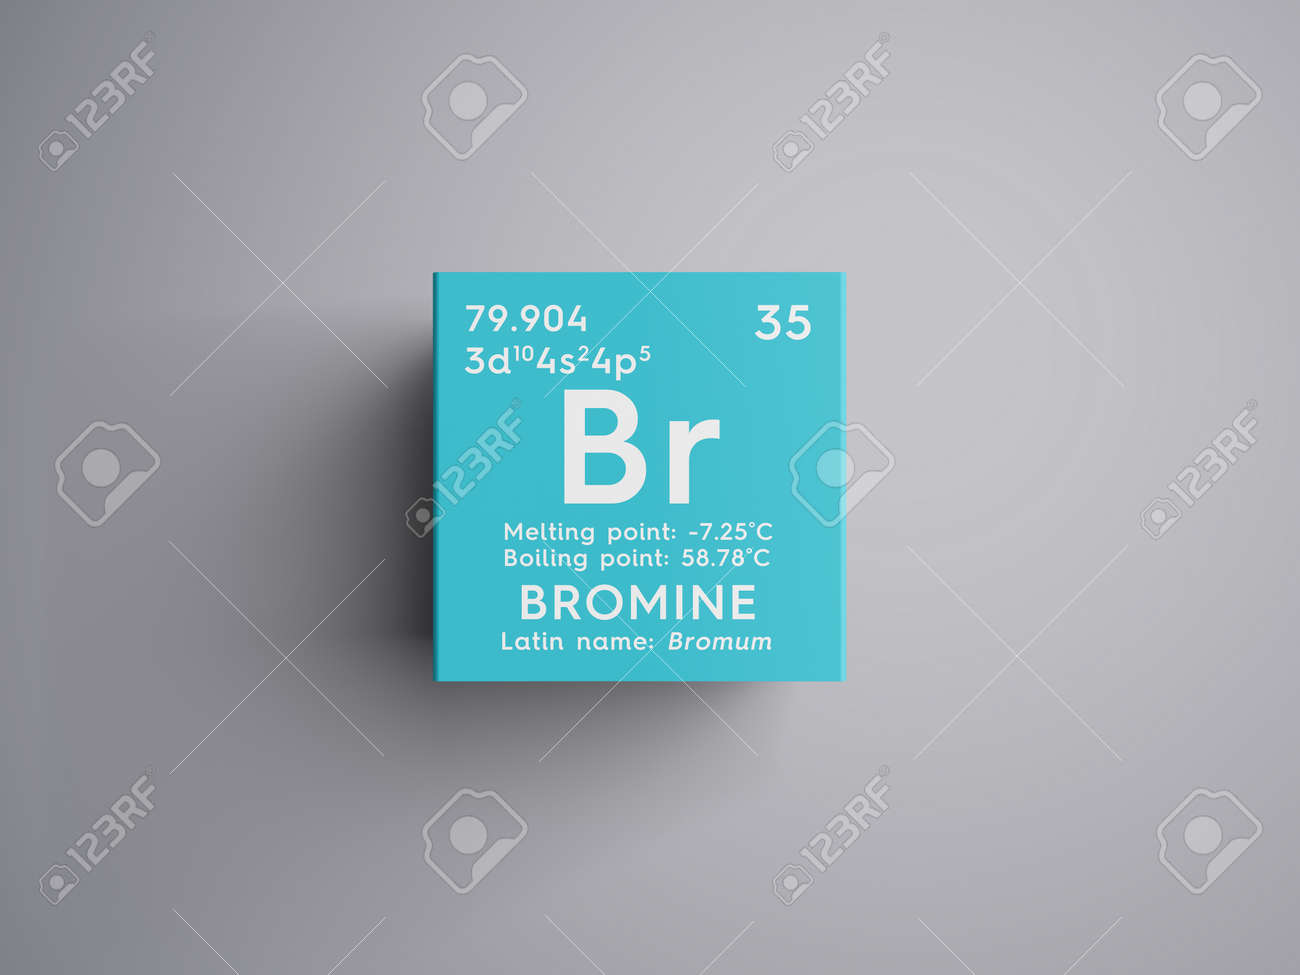 Bromine periodic table images periodic table images periodic table element 35 images periodic table images periodic table bromine images periodic table images bromine gamestrikefo Images